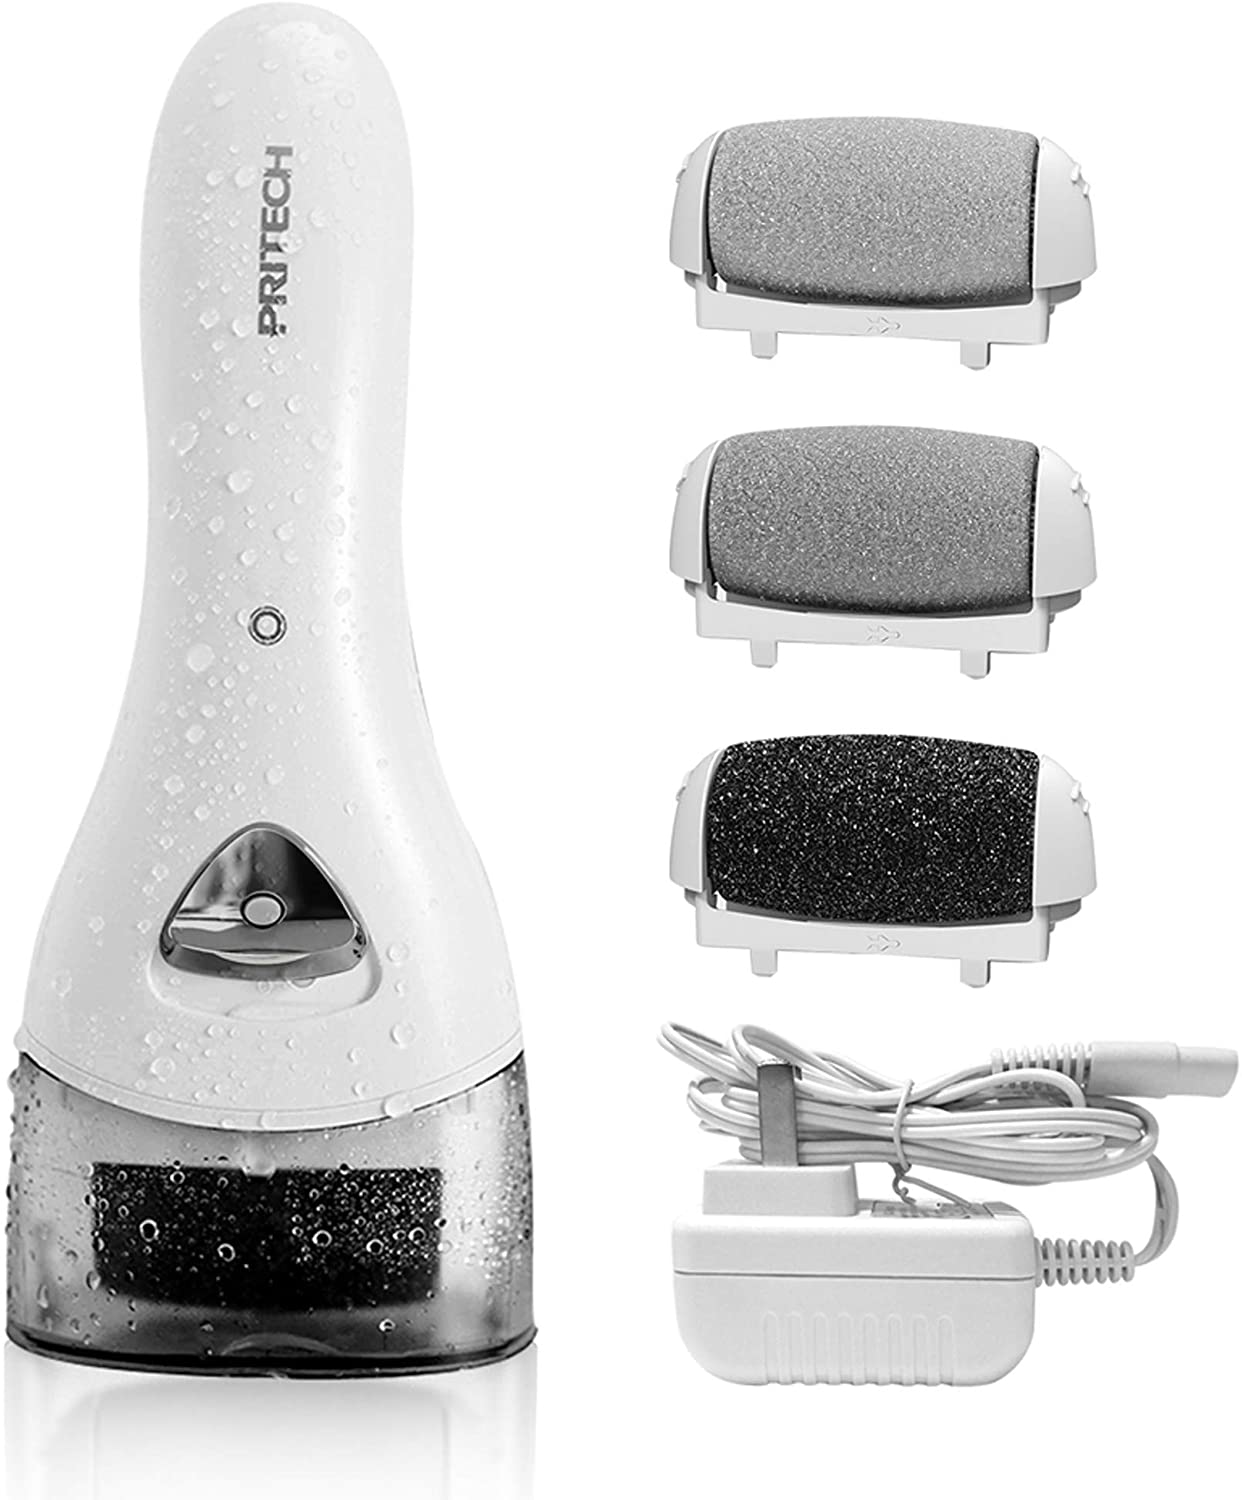 Electric Feet Callus Electronic Foot File Pedicure Tools by PRITECH